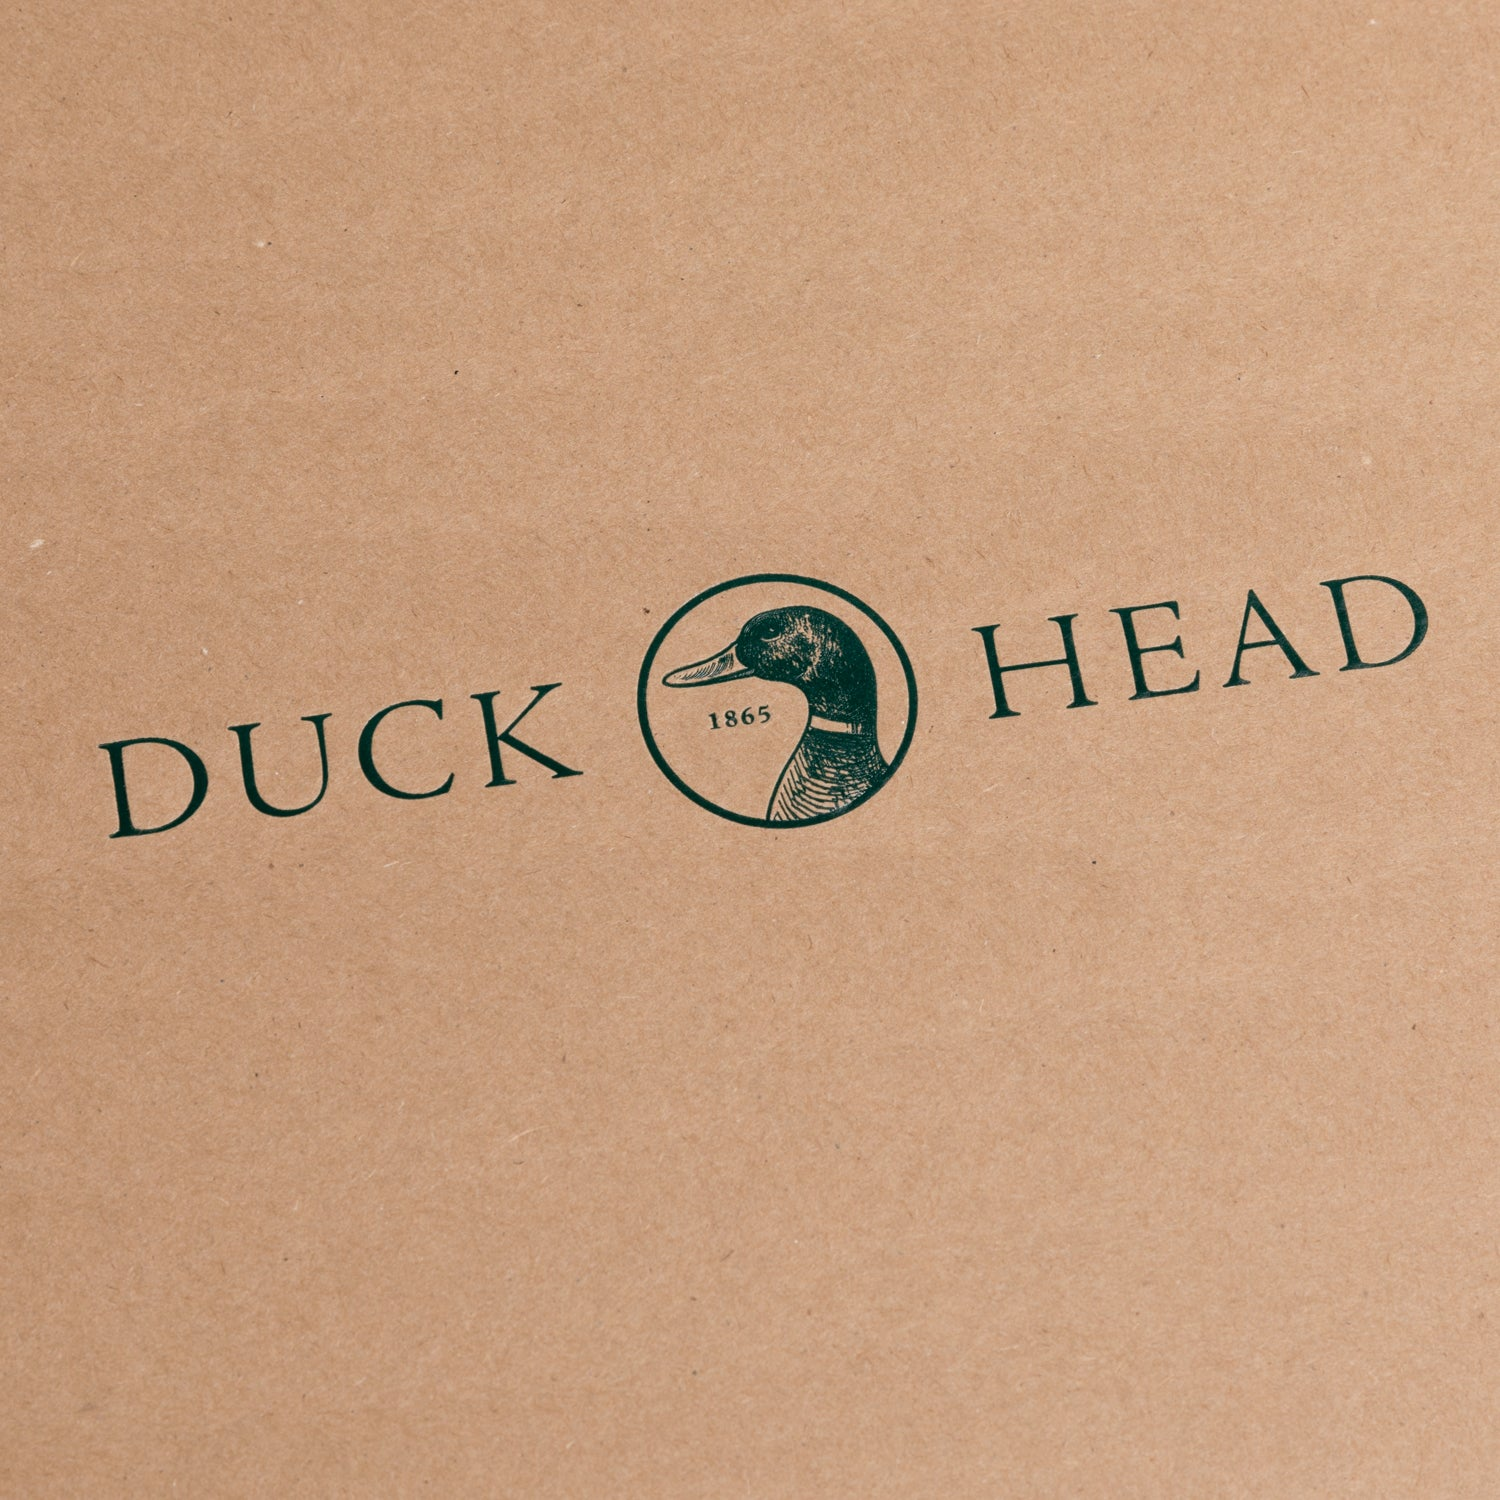 Duck Head Gift Box